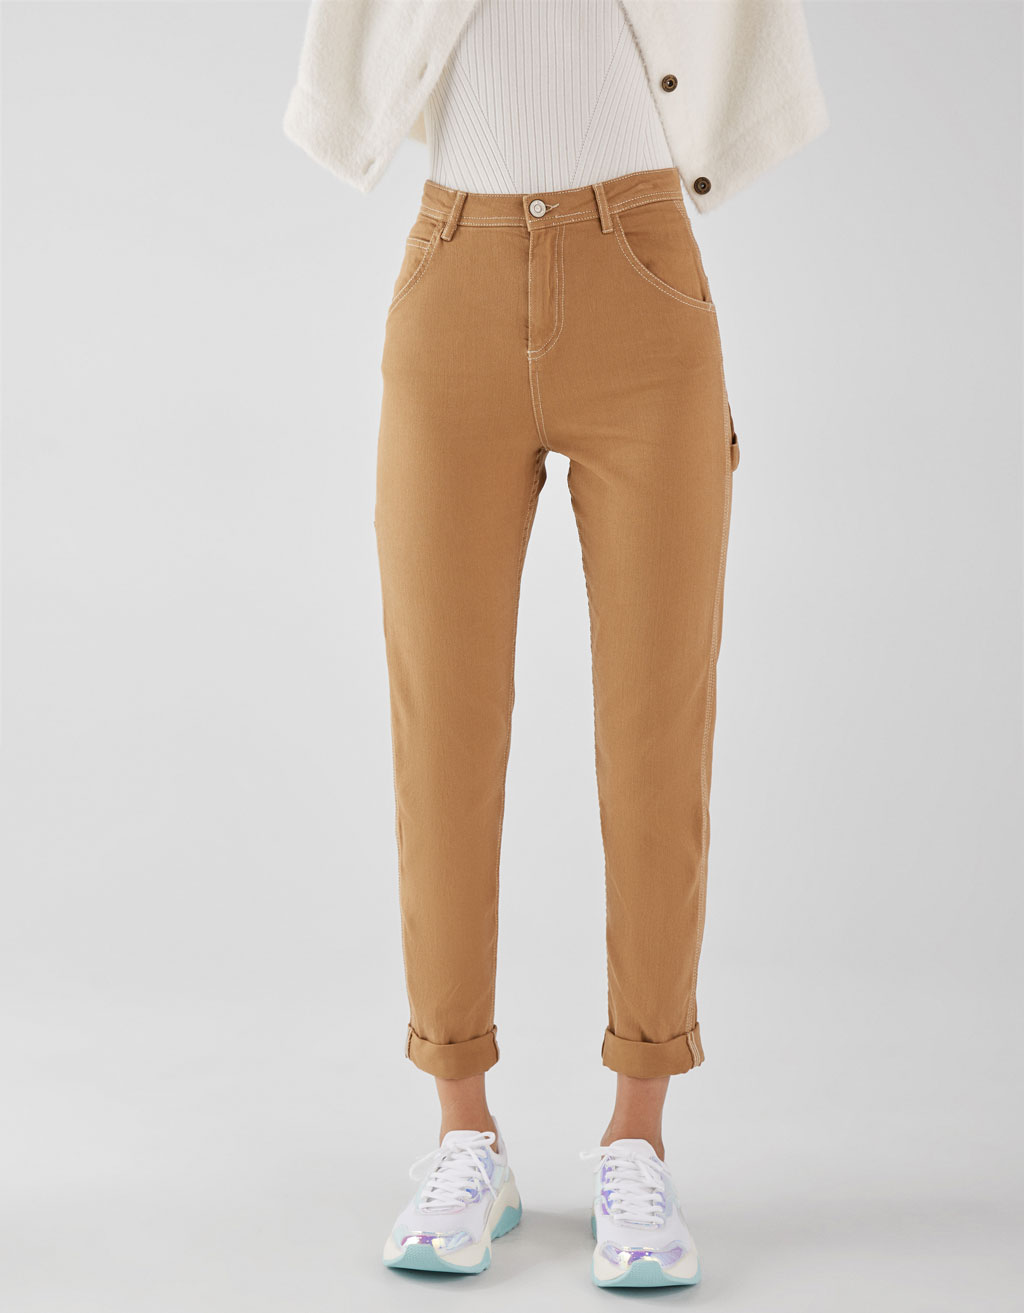 Contrasting relaxed fit pants